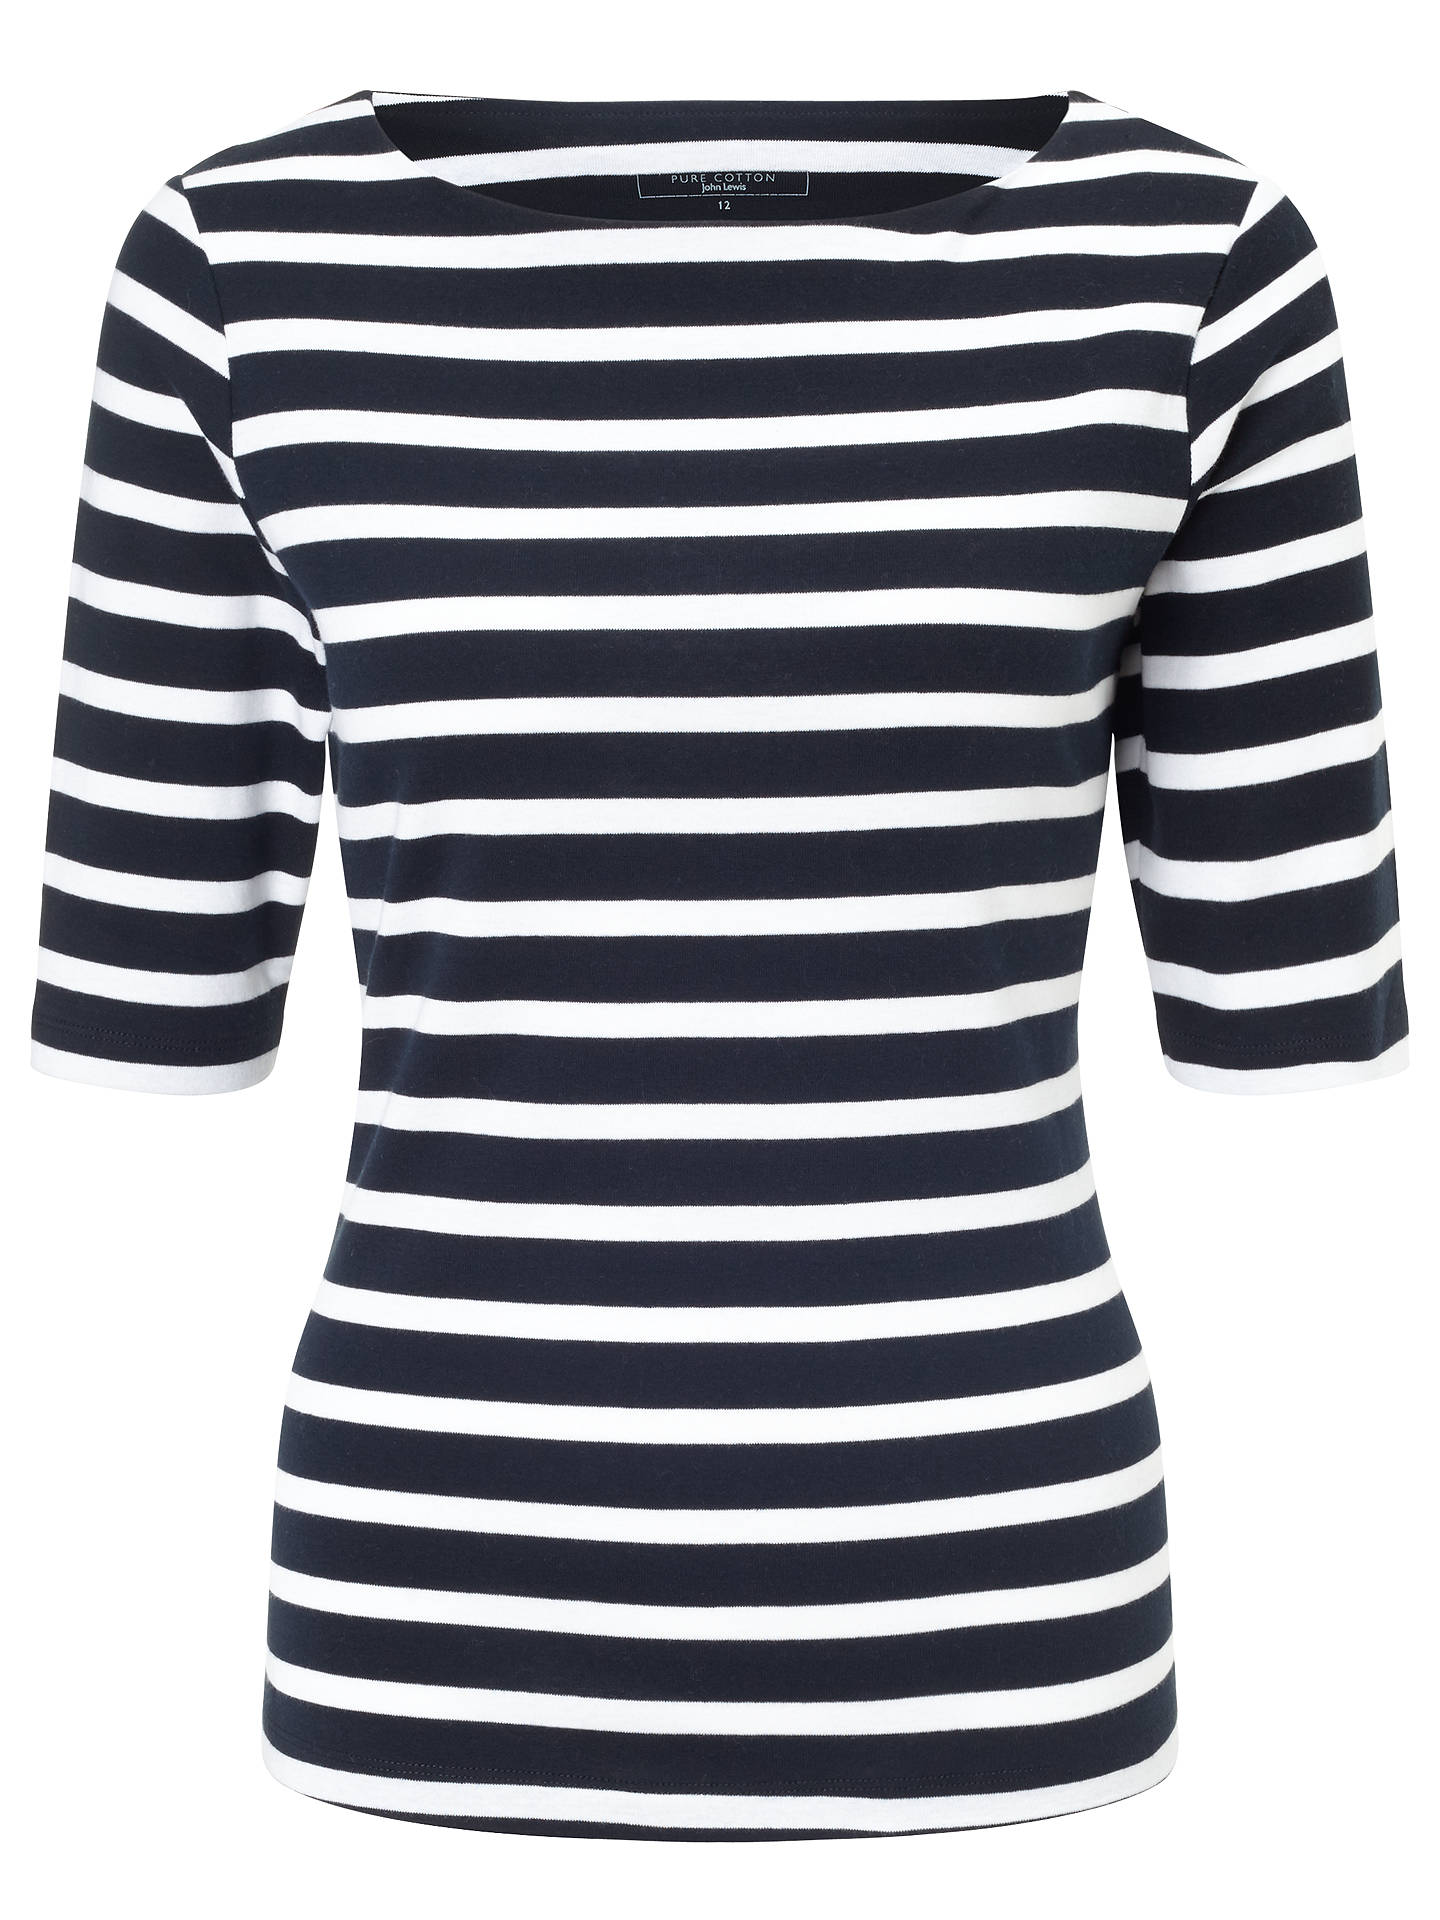 BuyJohn Lewis & Partners Half-Sleeve Breton Stripe Top, Navy/White, 8 Online at johnlewis.com